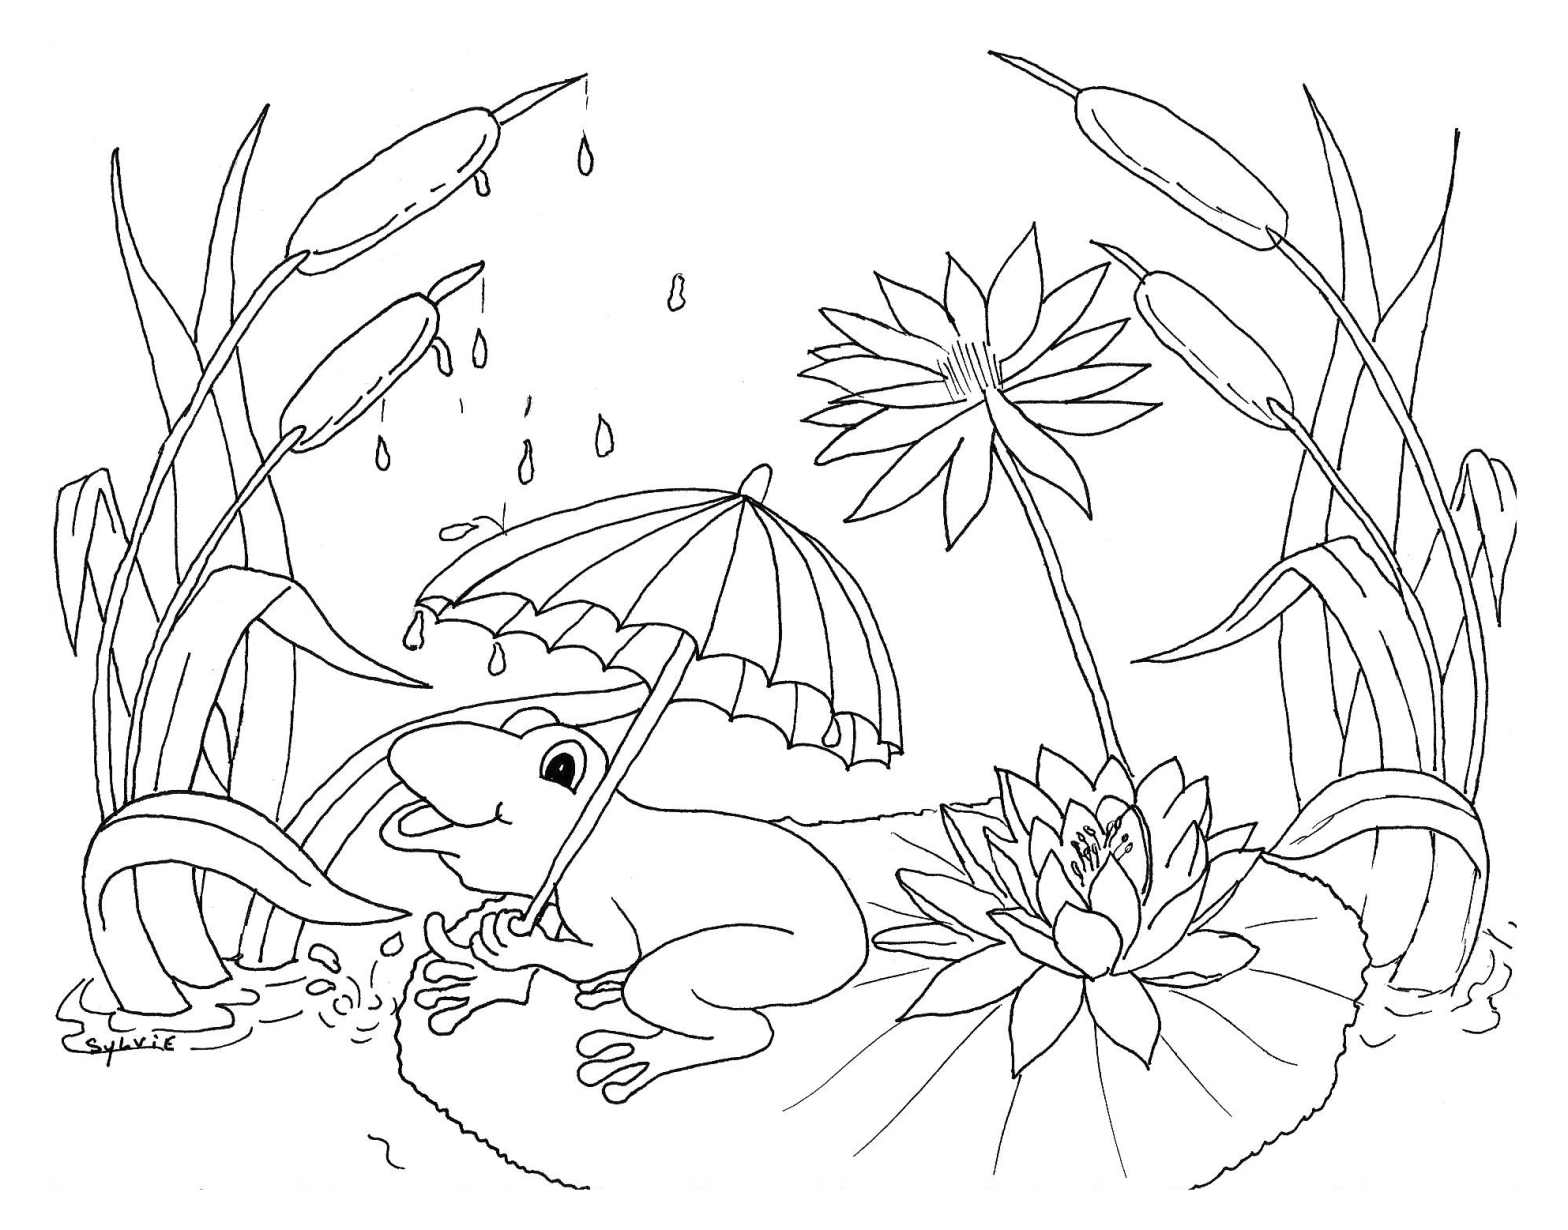 rainy day coloring pages for preschoolers weather free to color for children weather kids coloring coloring preschoolers rainy for pages day